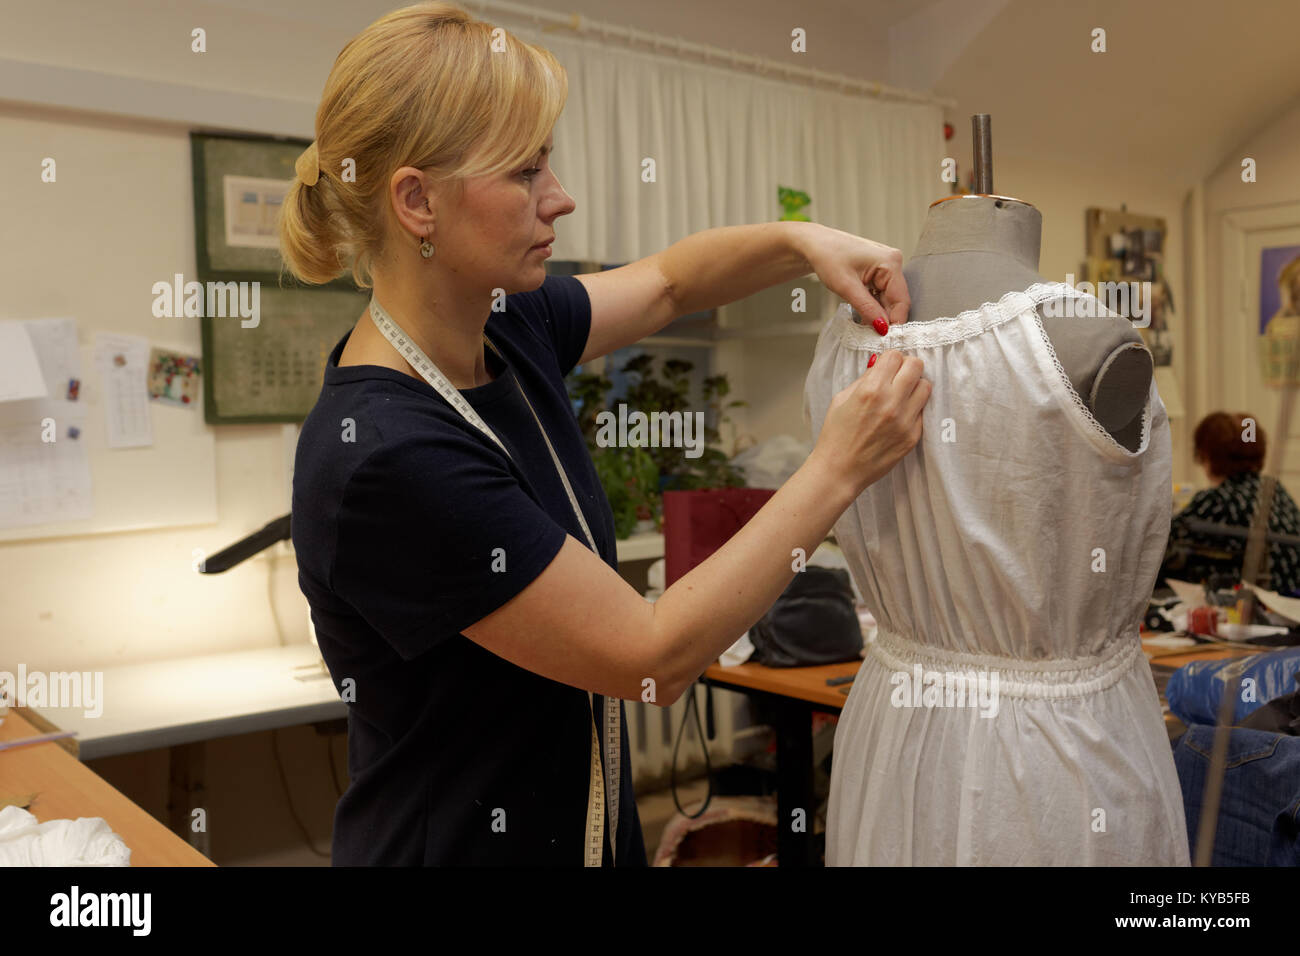 Apparel cutter at work in the Alexandrinsky theatre, St. Petersburg, Russia - Stock Image